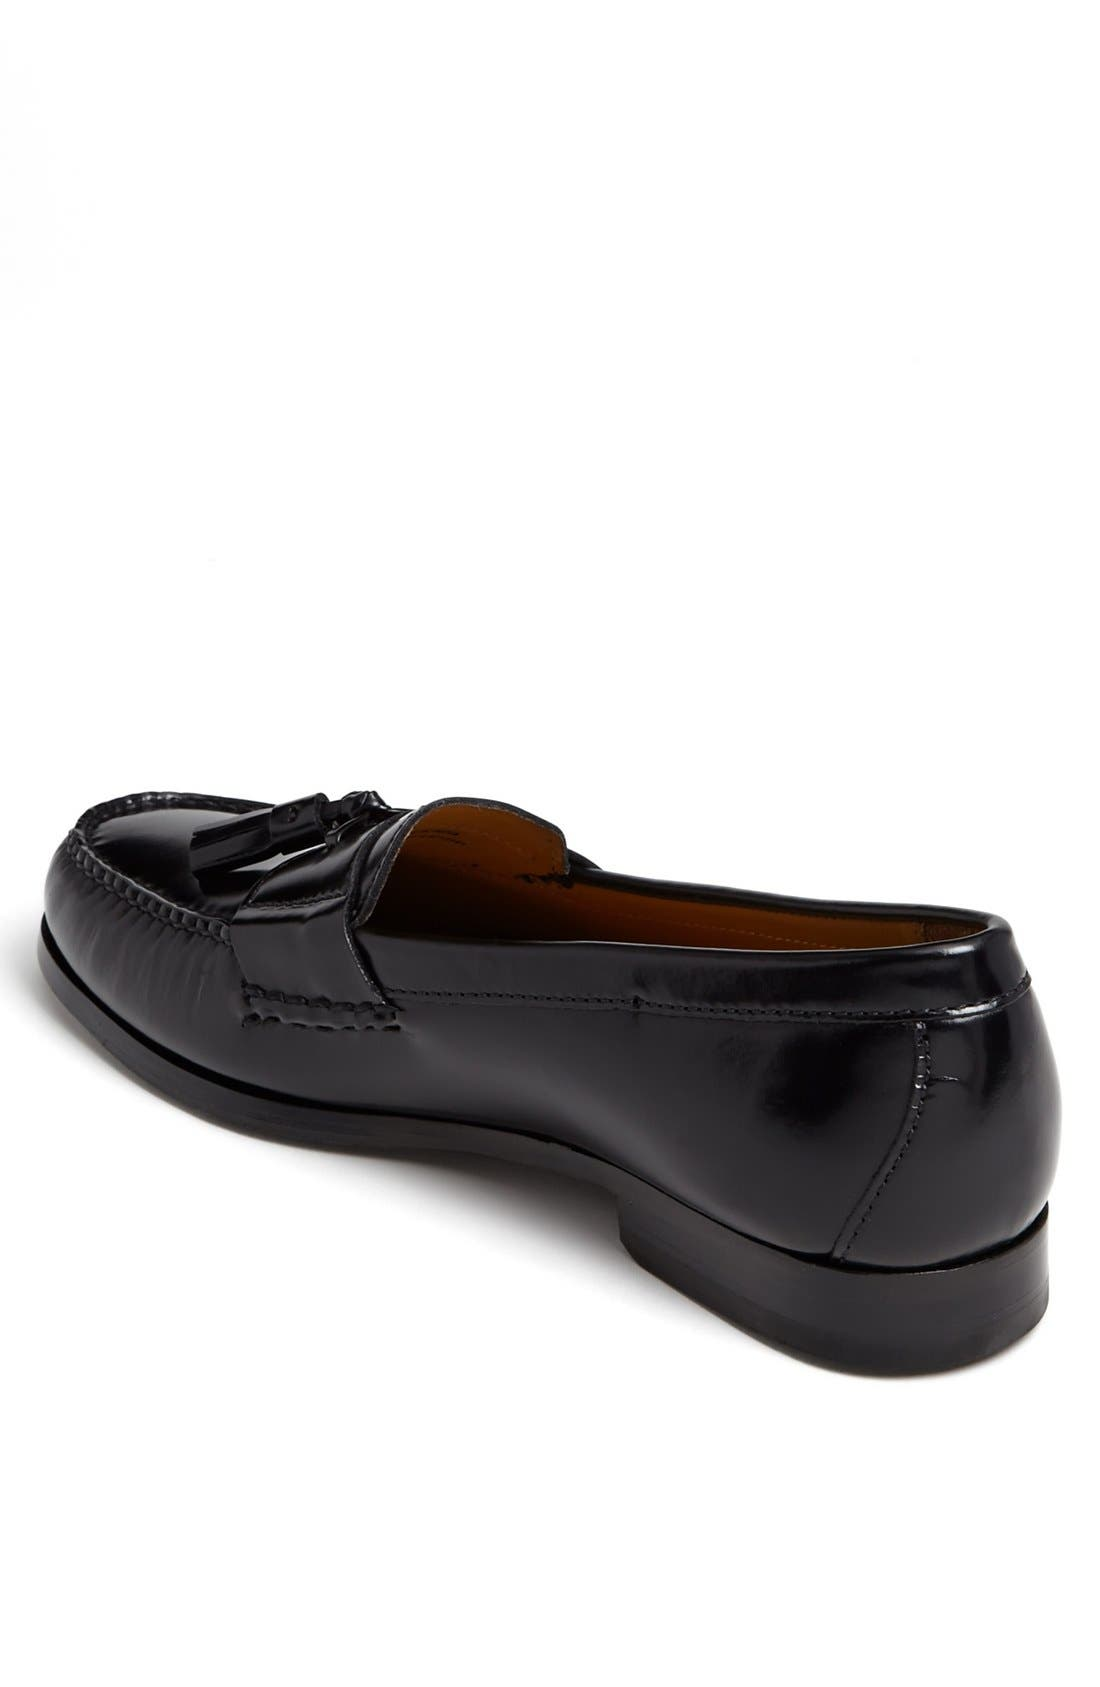 Alternate Image 2  - Cole Haan 'Pinch Air Tassel' Loafer (Online Only)   (Men)